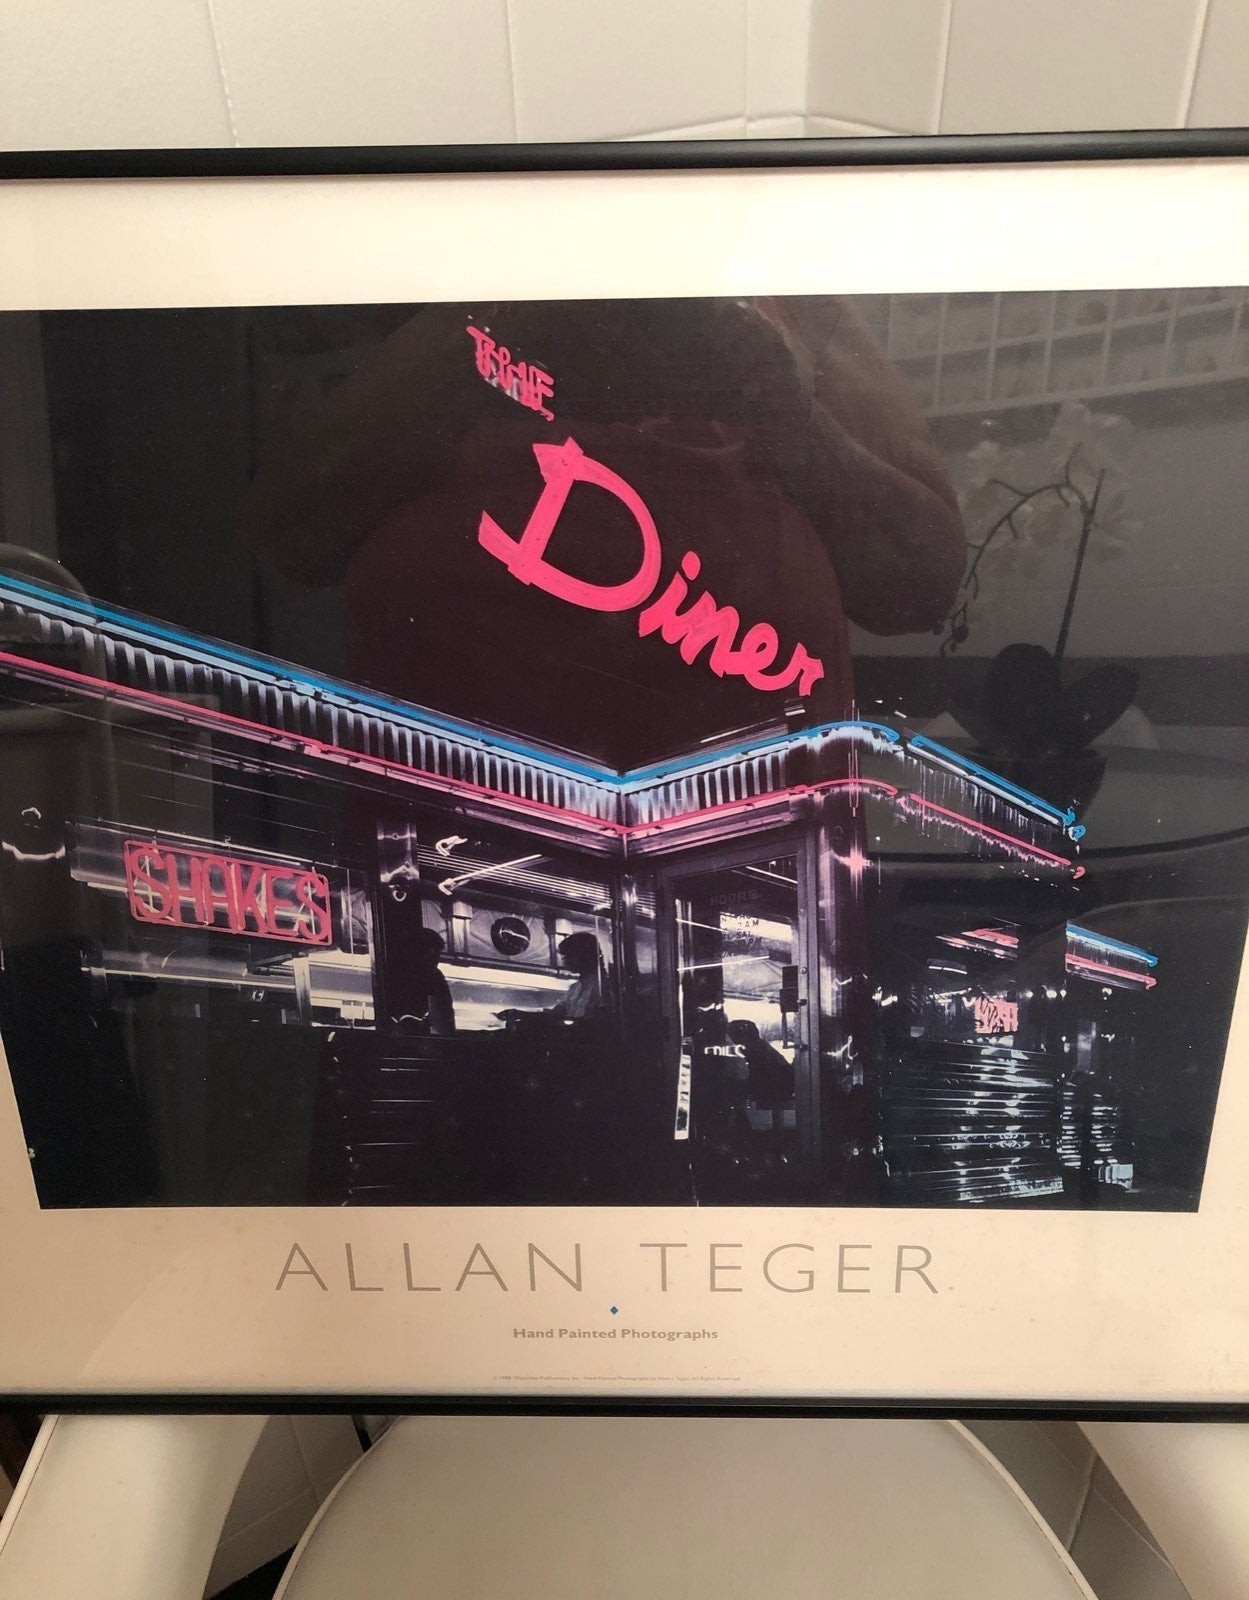 DINER by Allan Teger handpainted photo